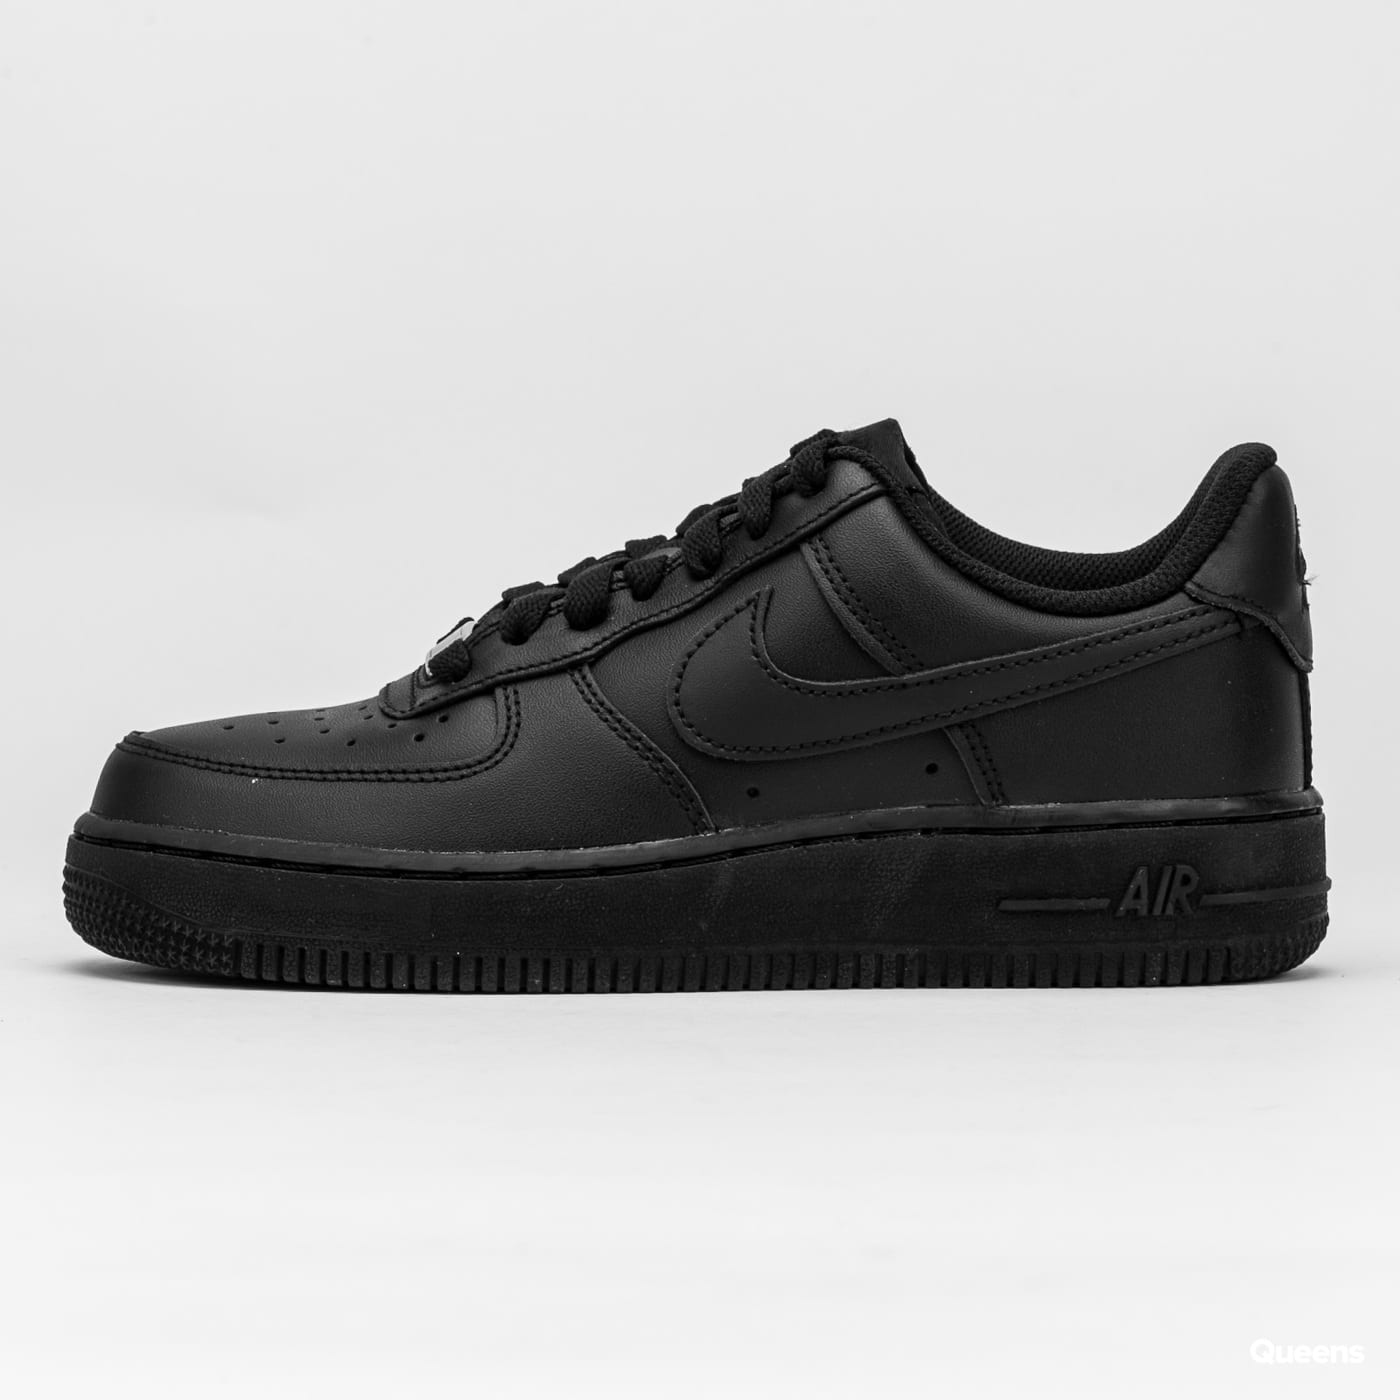 Nike WMNS Air Force 1 '07 black / black